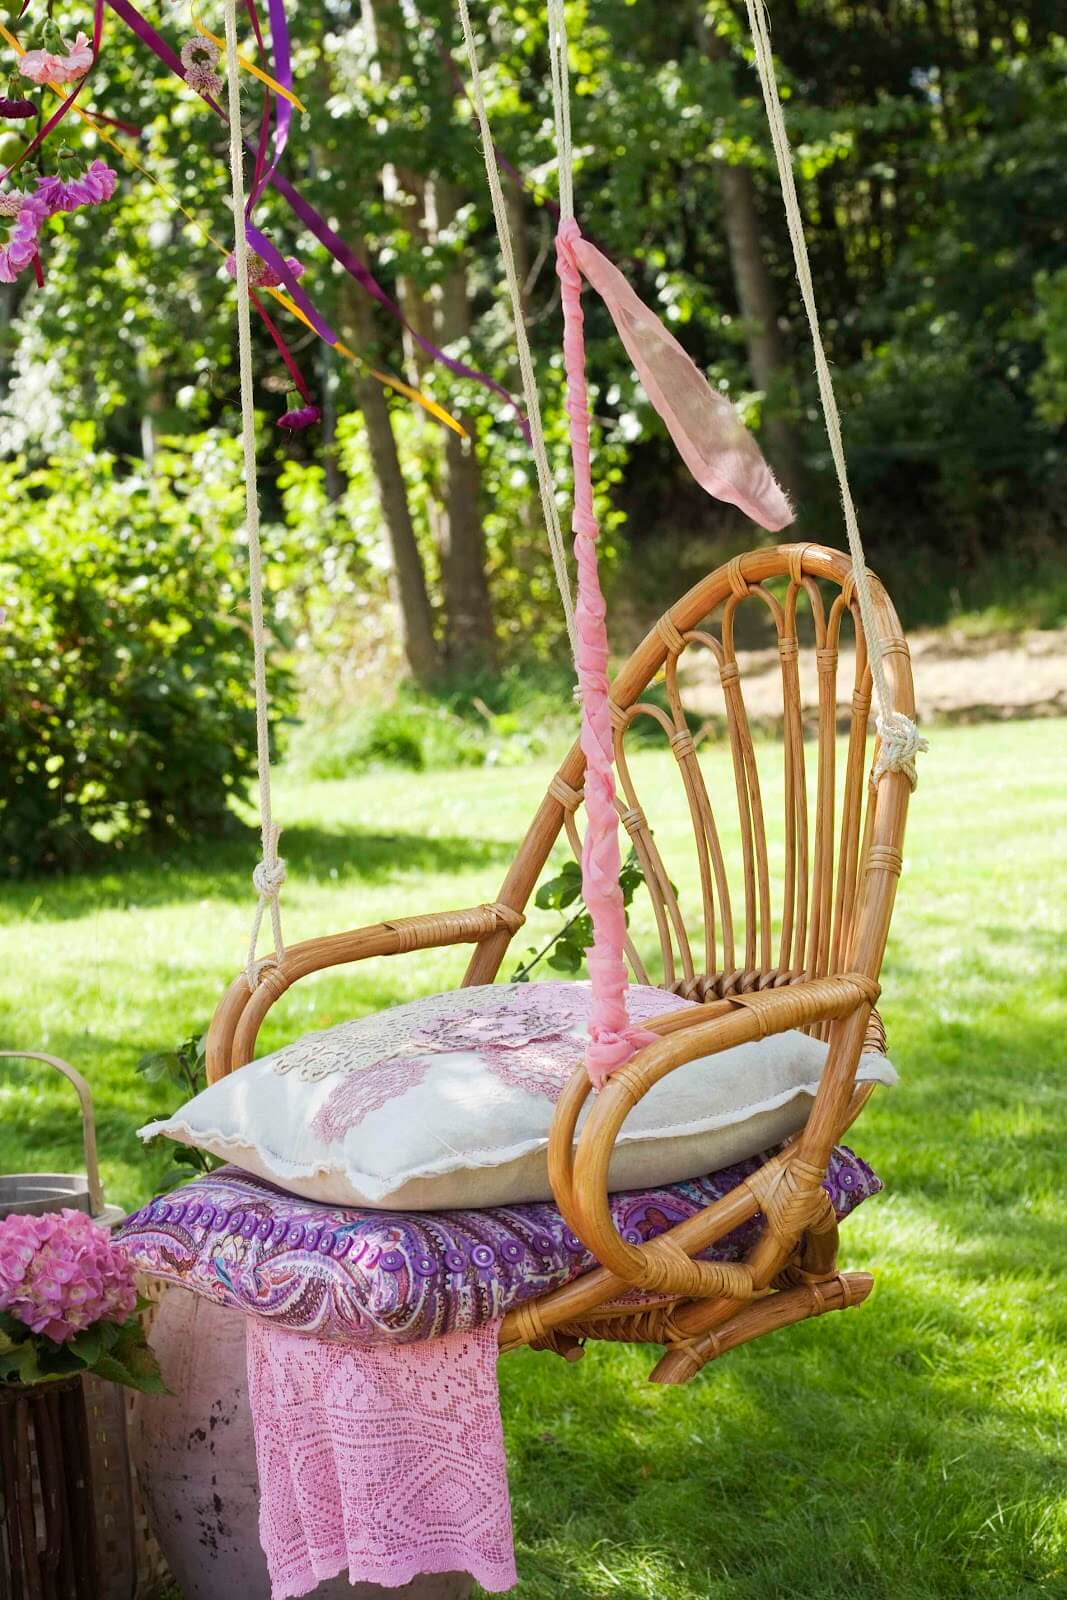 A Chair Swing with Plenty of Cushions